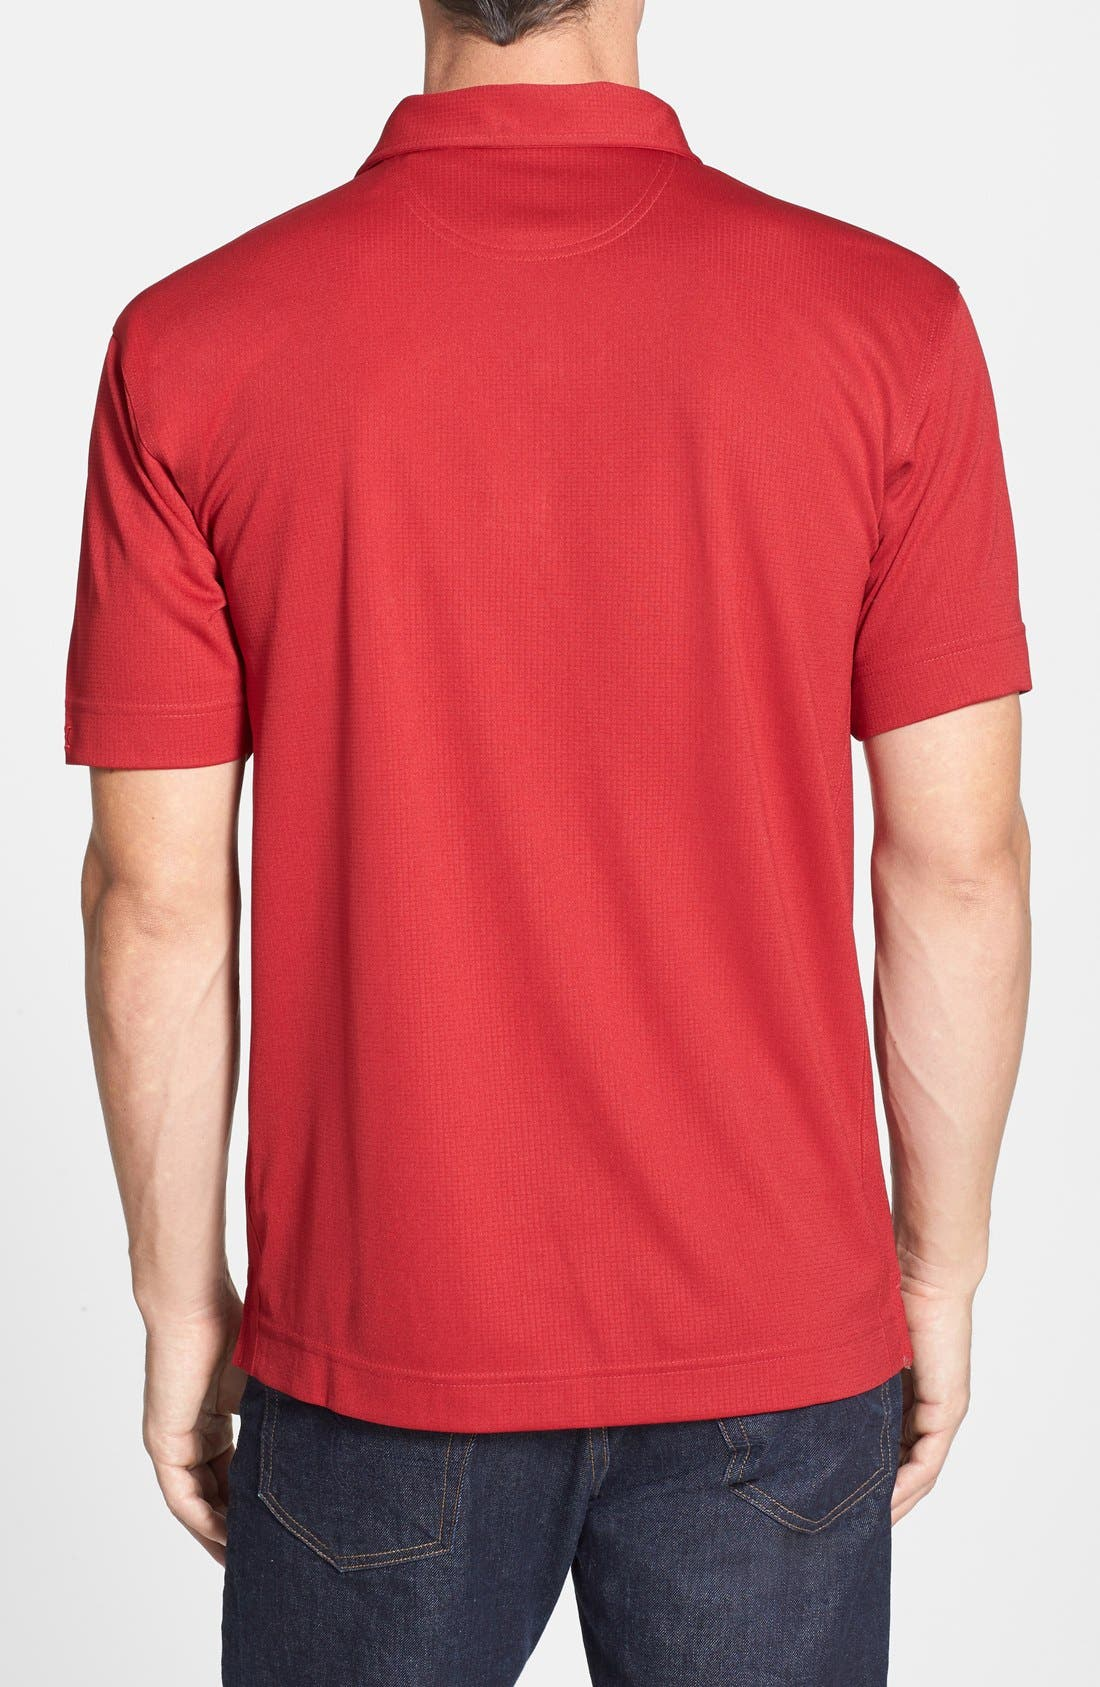 San Francisco 49ers - Genre DryTec Moisture Wicking Polo,                             Alternate thumbnail 2, color,                             Cardinal Red